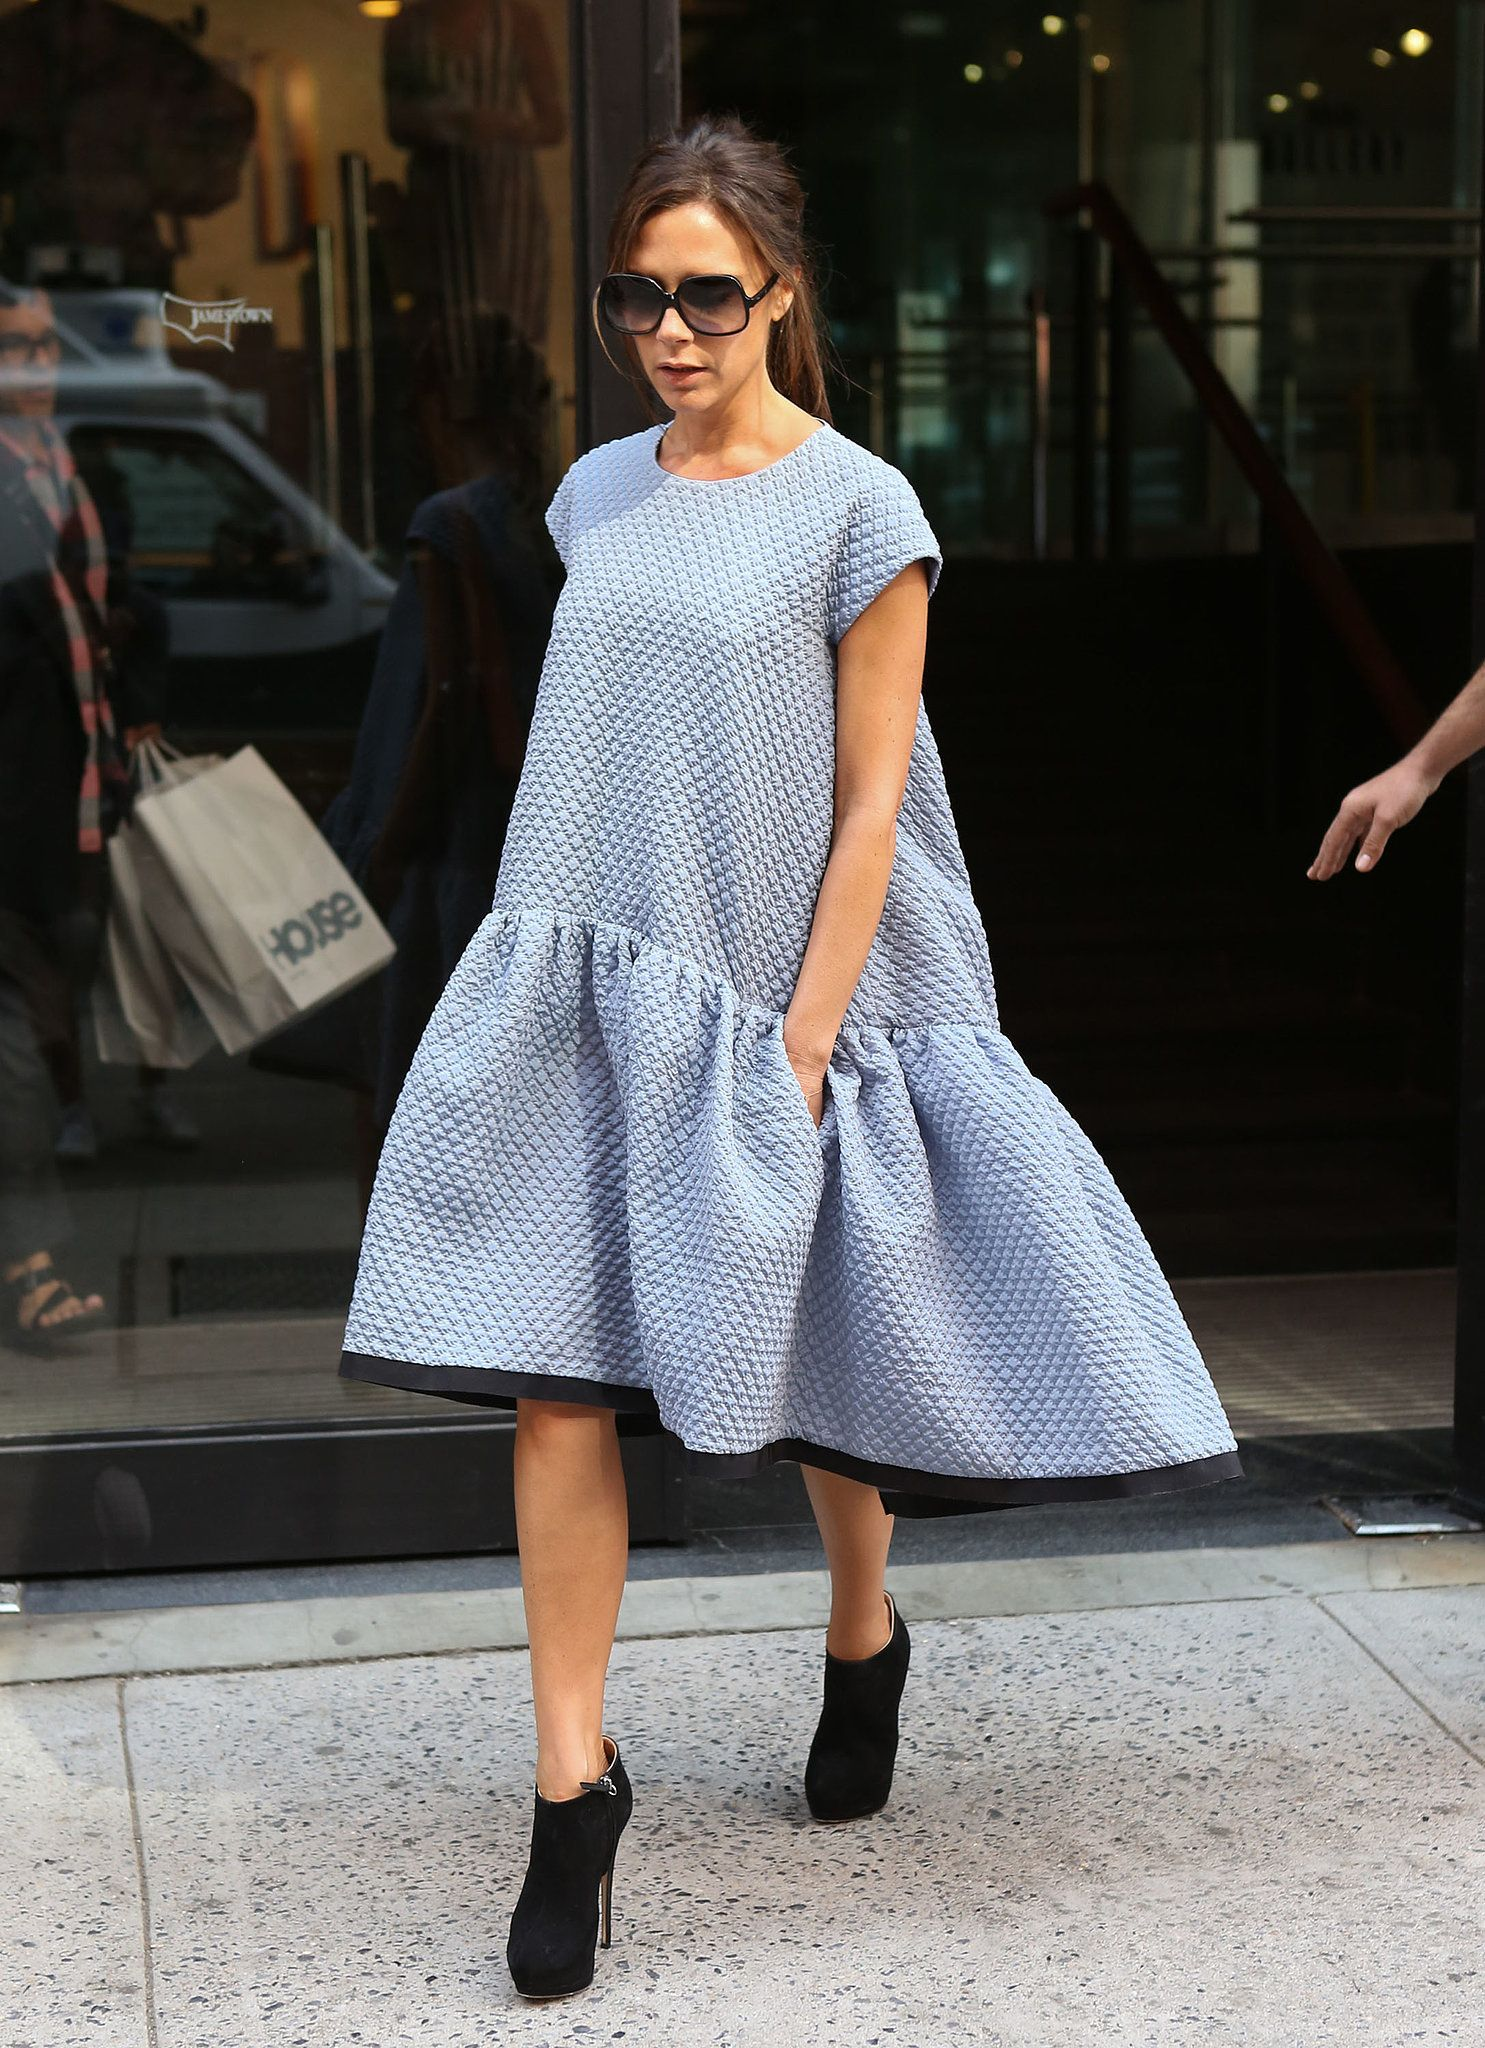 VB swapped her usually streamlined styles for a voluminous drop-waist Victoria Beckham dress while out and about in NYC.